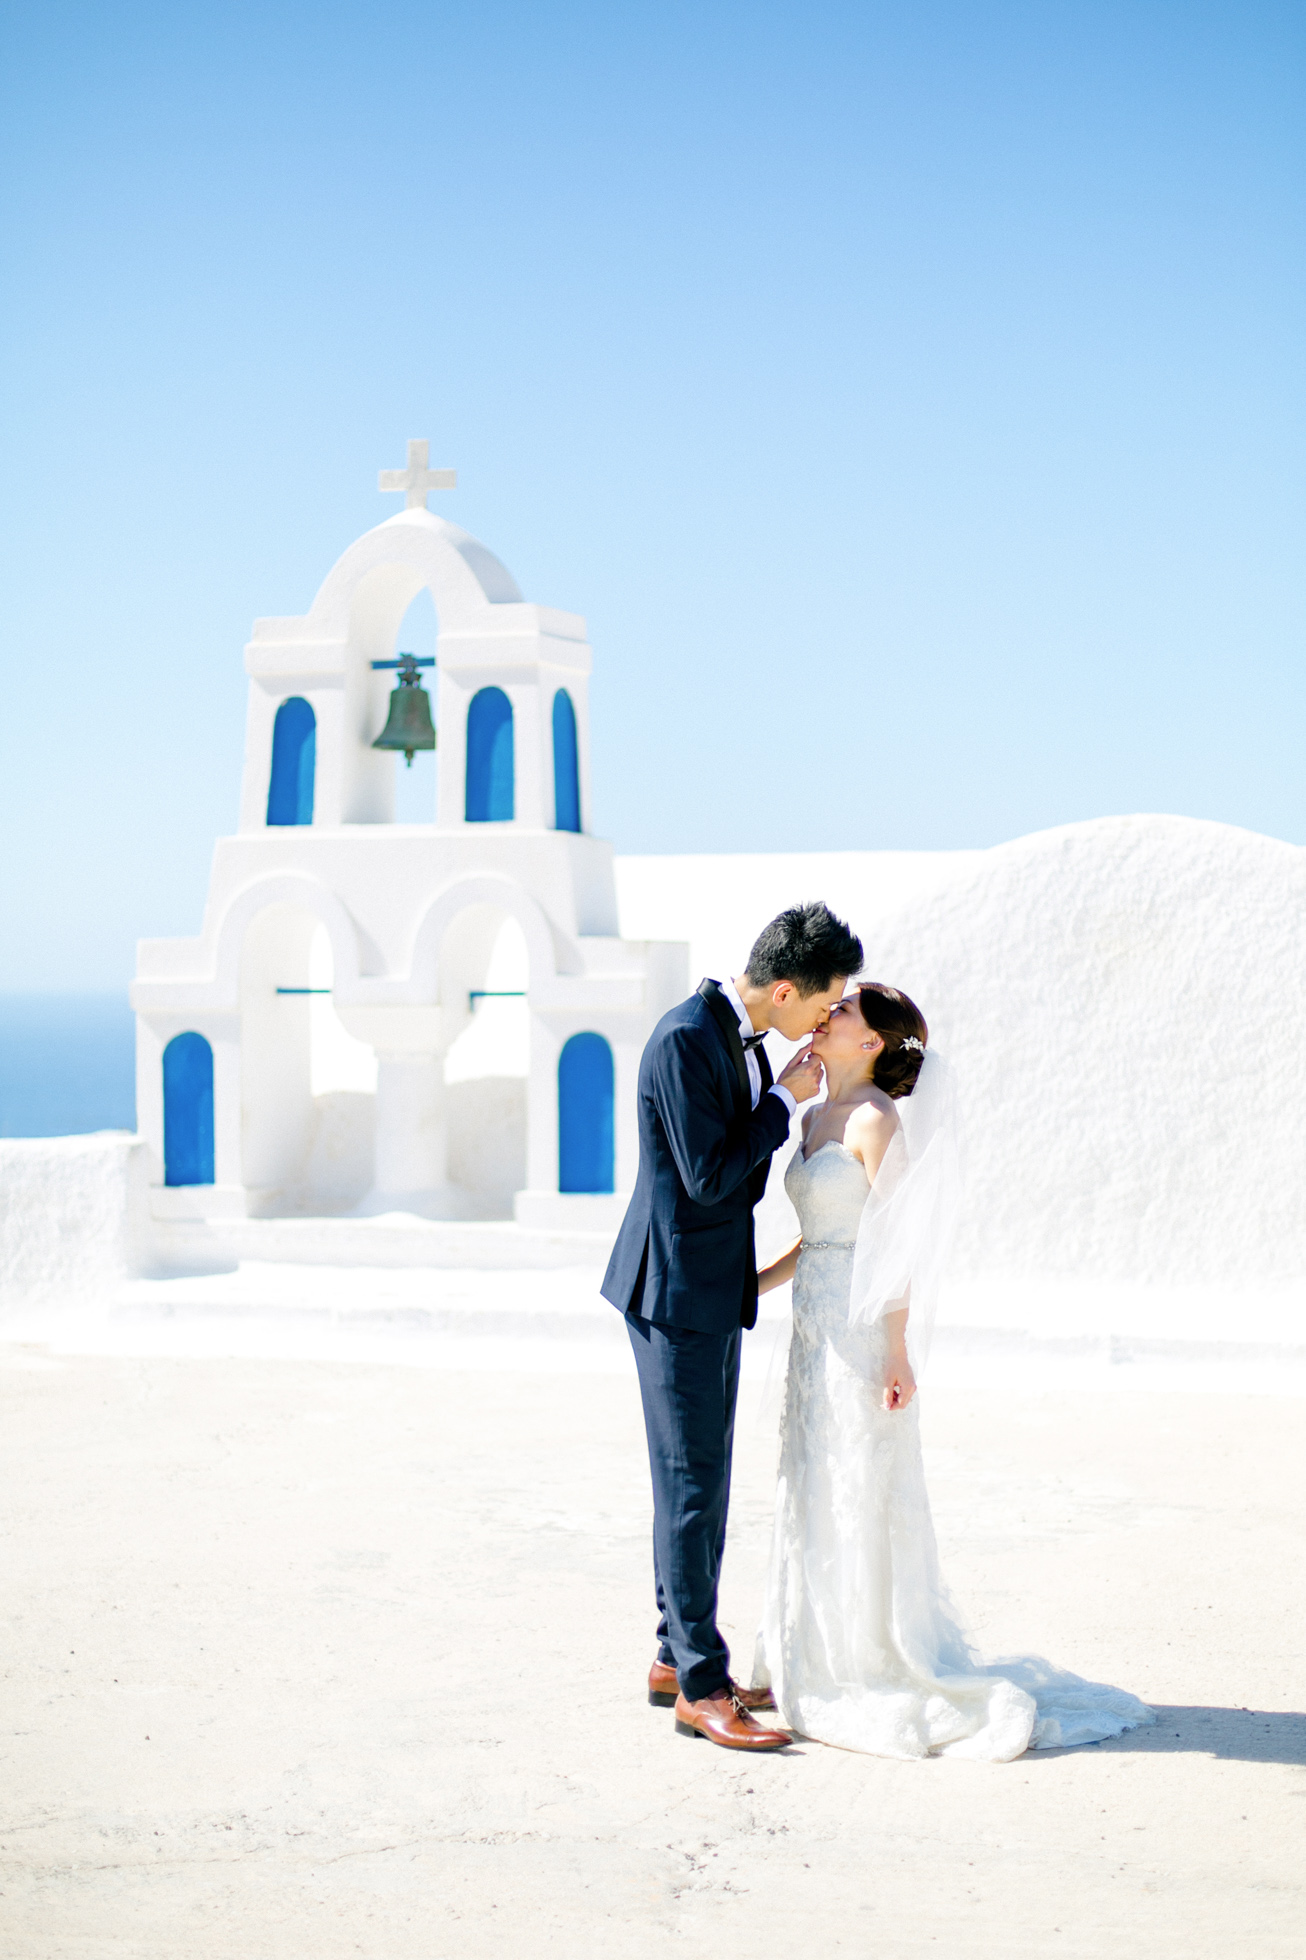 Professional Santorini wedding day photoshoot, groom and bride are kissing with the picturesque background of Oia, Santorini church and clear blue skies.